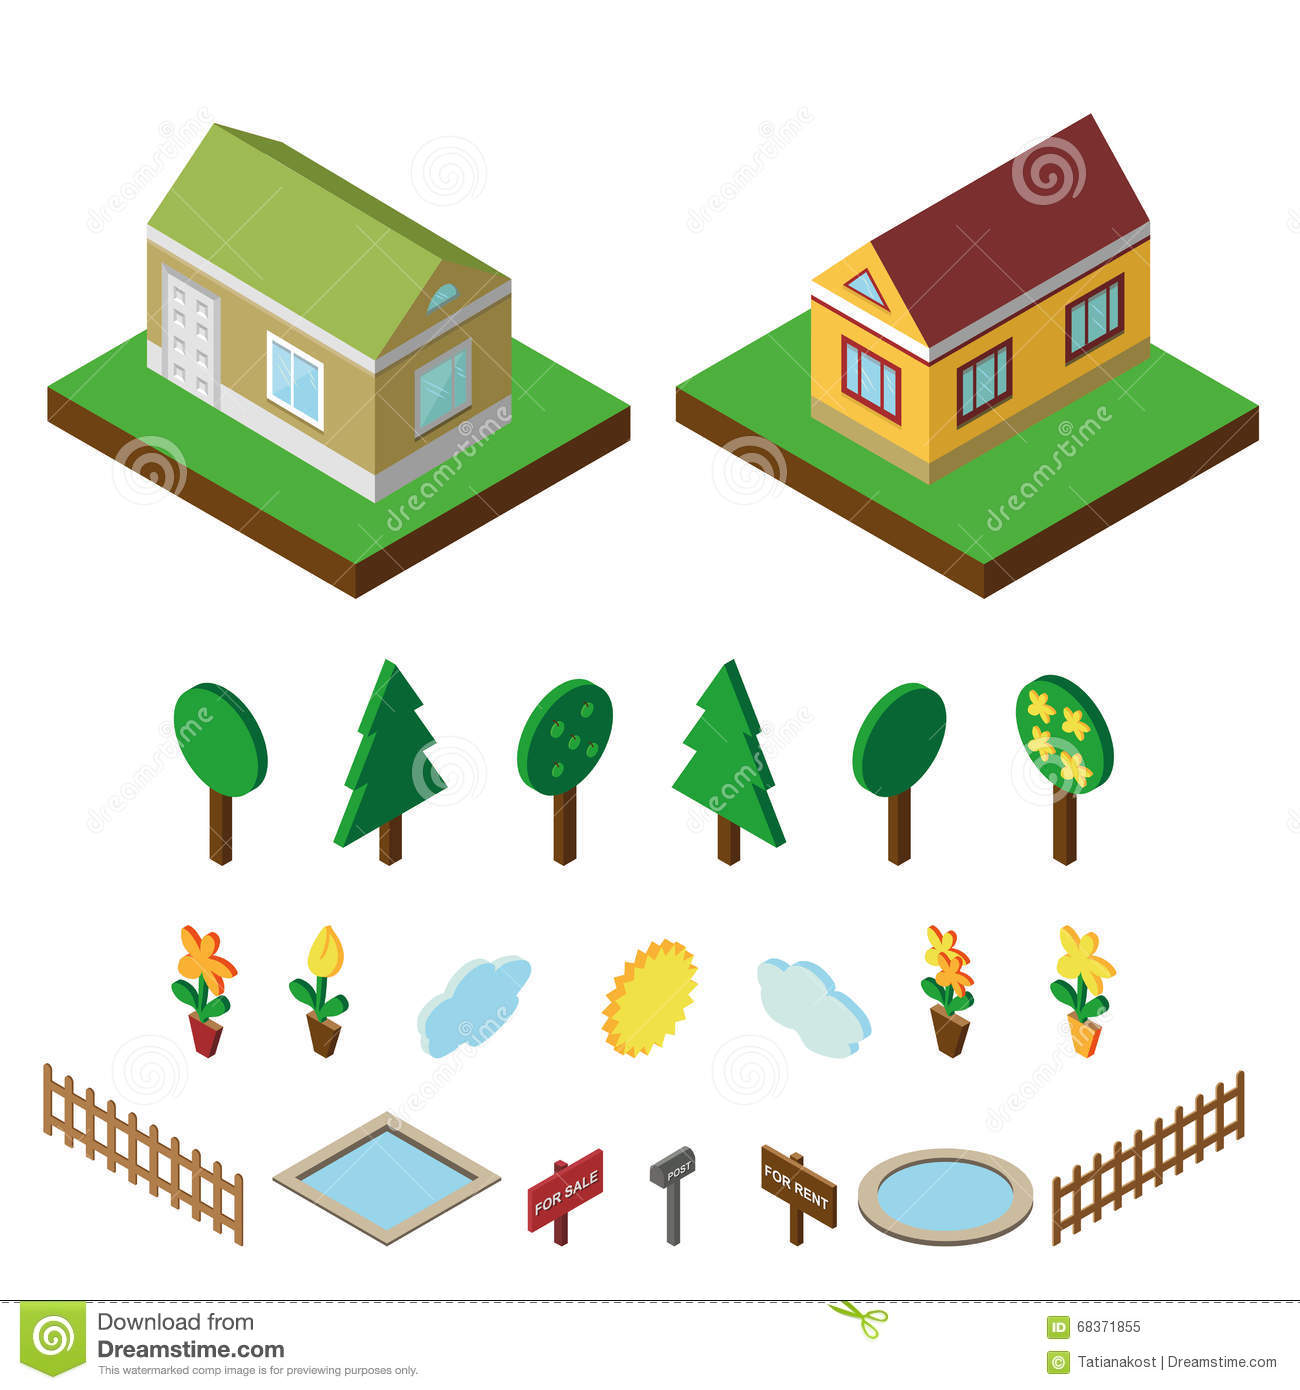 More similar stock images of 3d landscape with fall tree - Isometric House 3d Village Landscape Icons Set Royalty Free Stock Photo